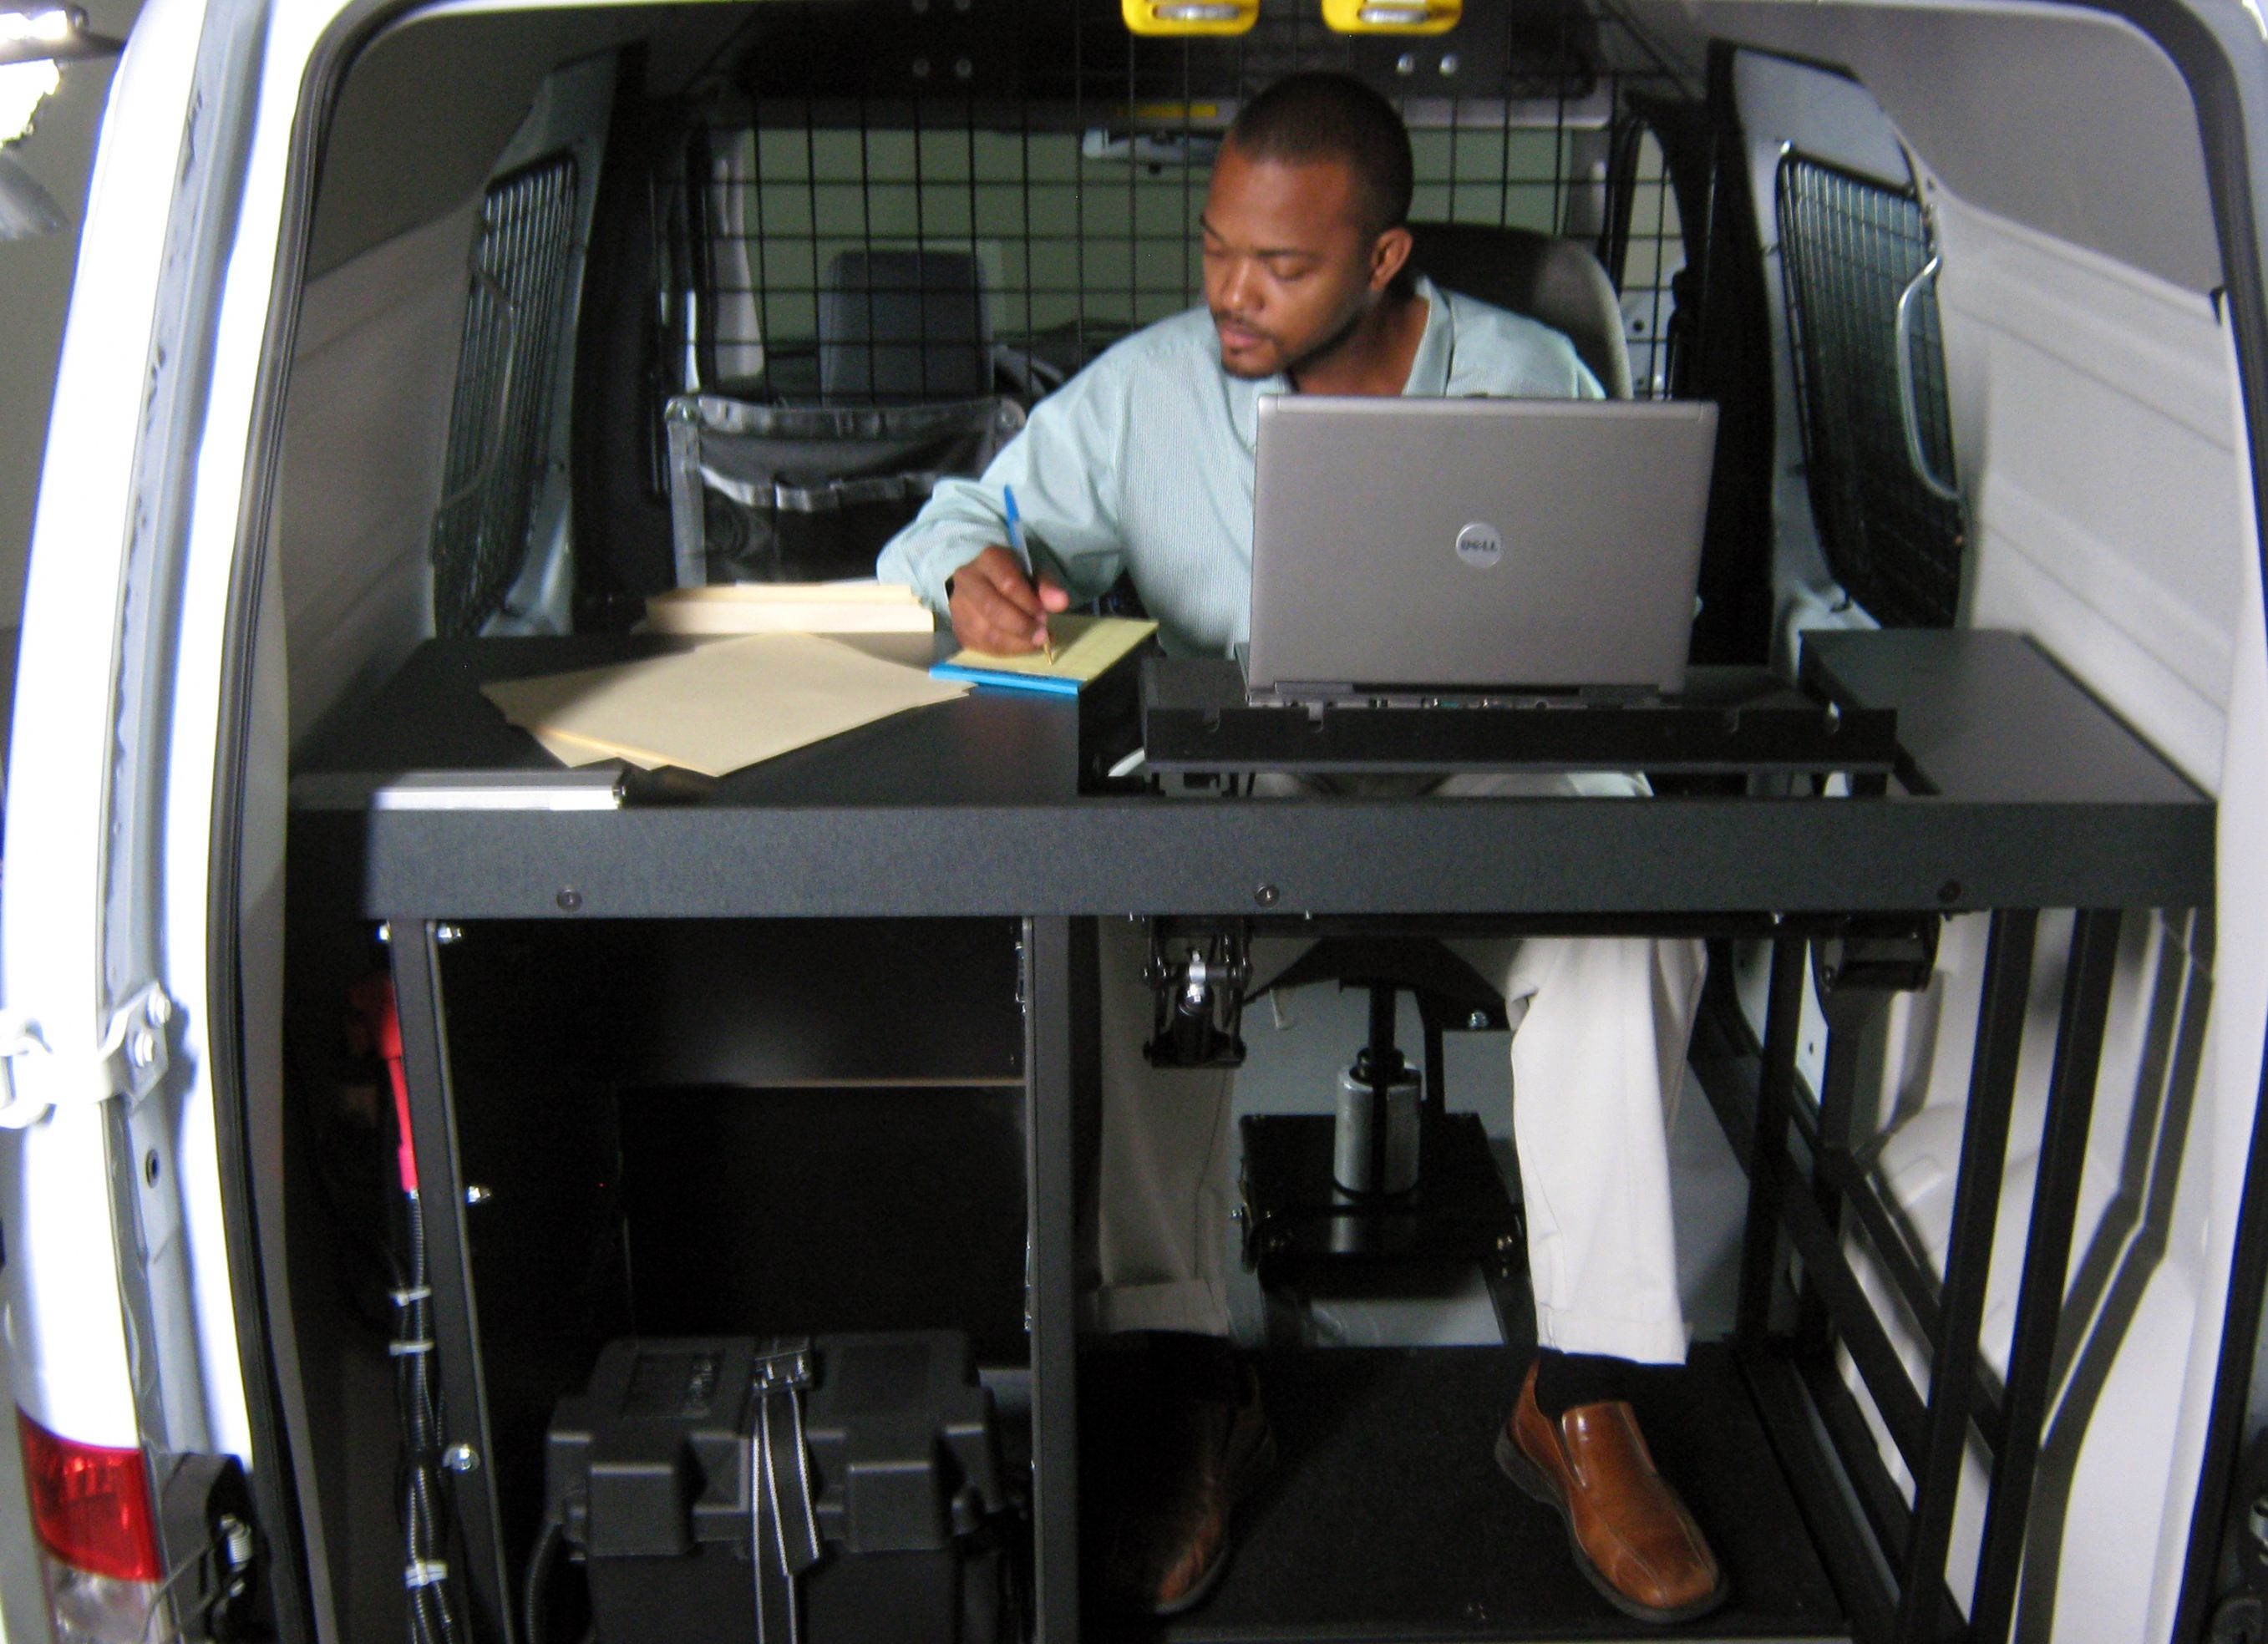 Mobile Office Car Desk Workstations Guest Decorating Ideas Check More At Http Www Intown